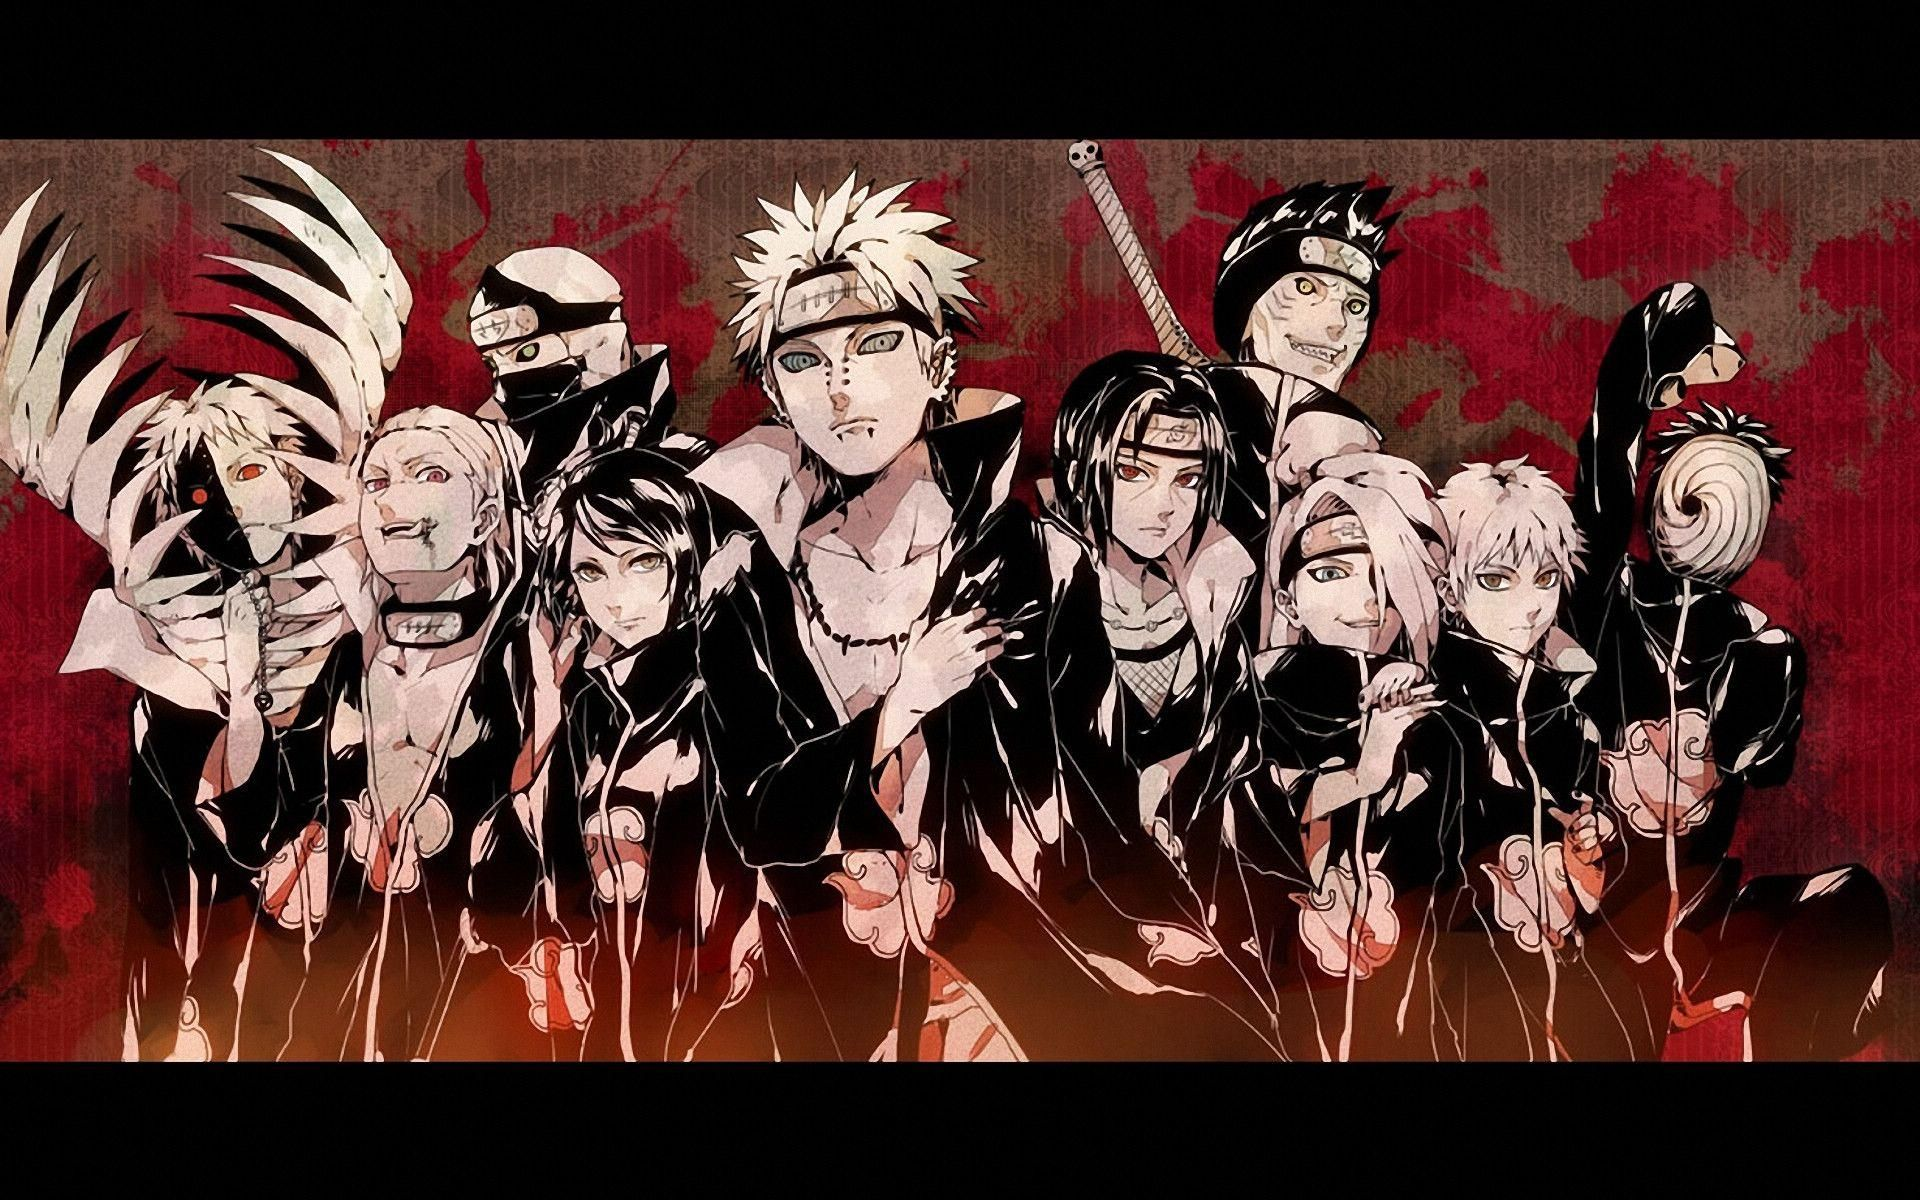 Naruto Hd Wallpapers For Windows 10 Naruto Akatsuki Wallpapers Hd Wallpaper Cave Download Wallpaper 1366 In 2020 Wallpaper Naruto Shippuden Naruto Wallpaper Akatsuki